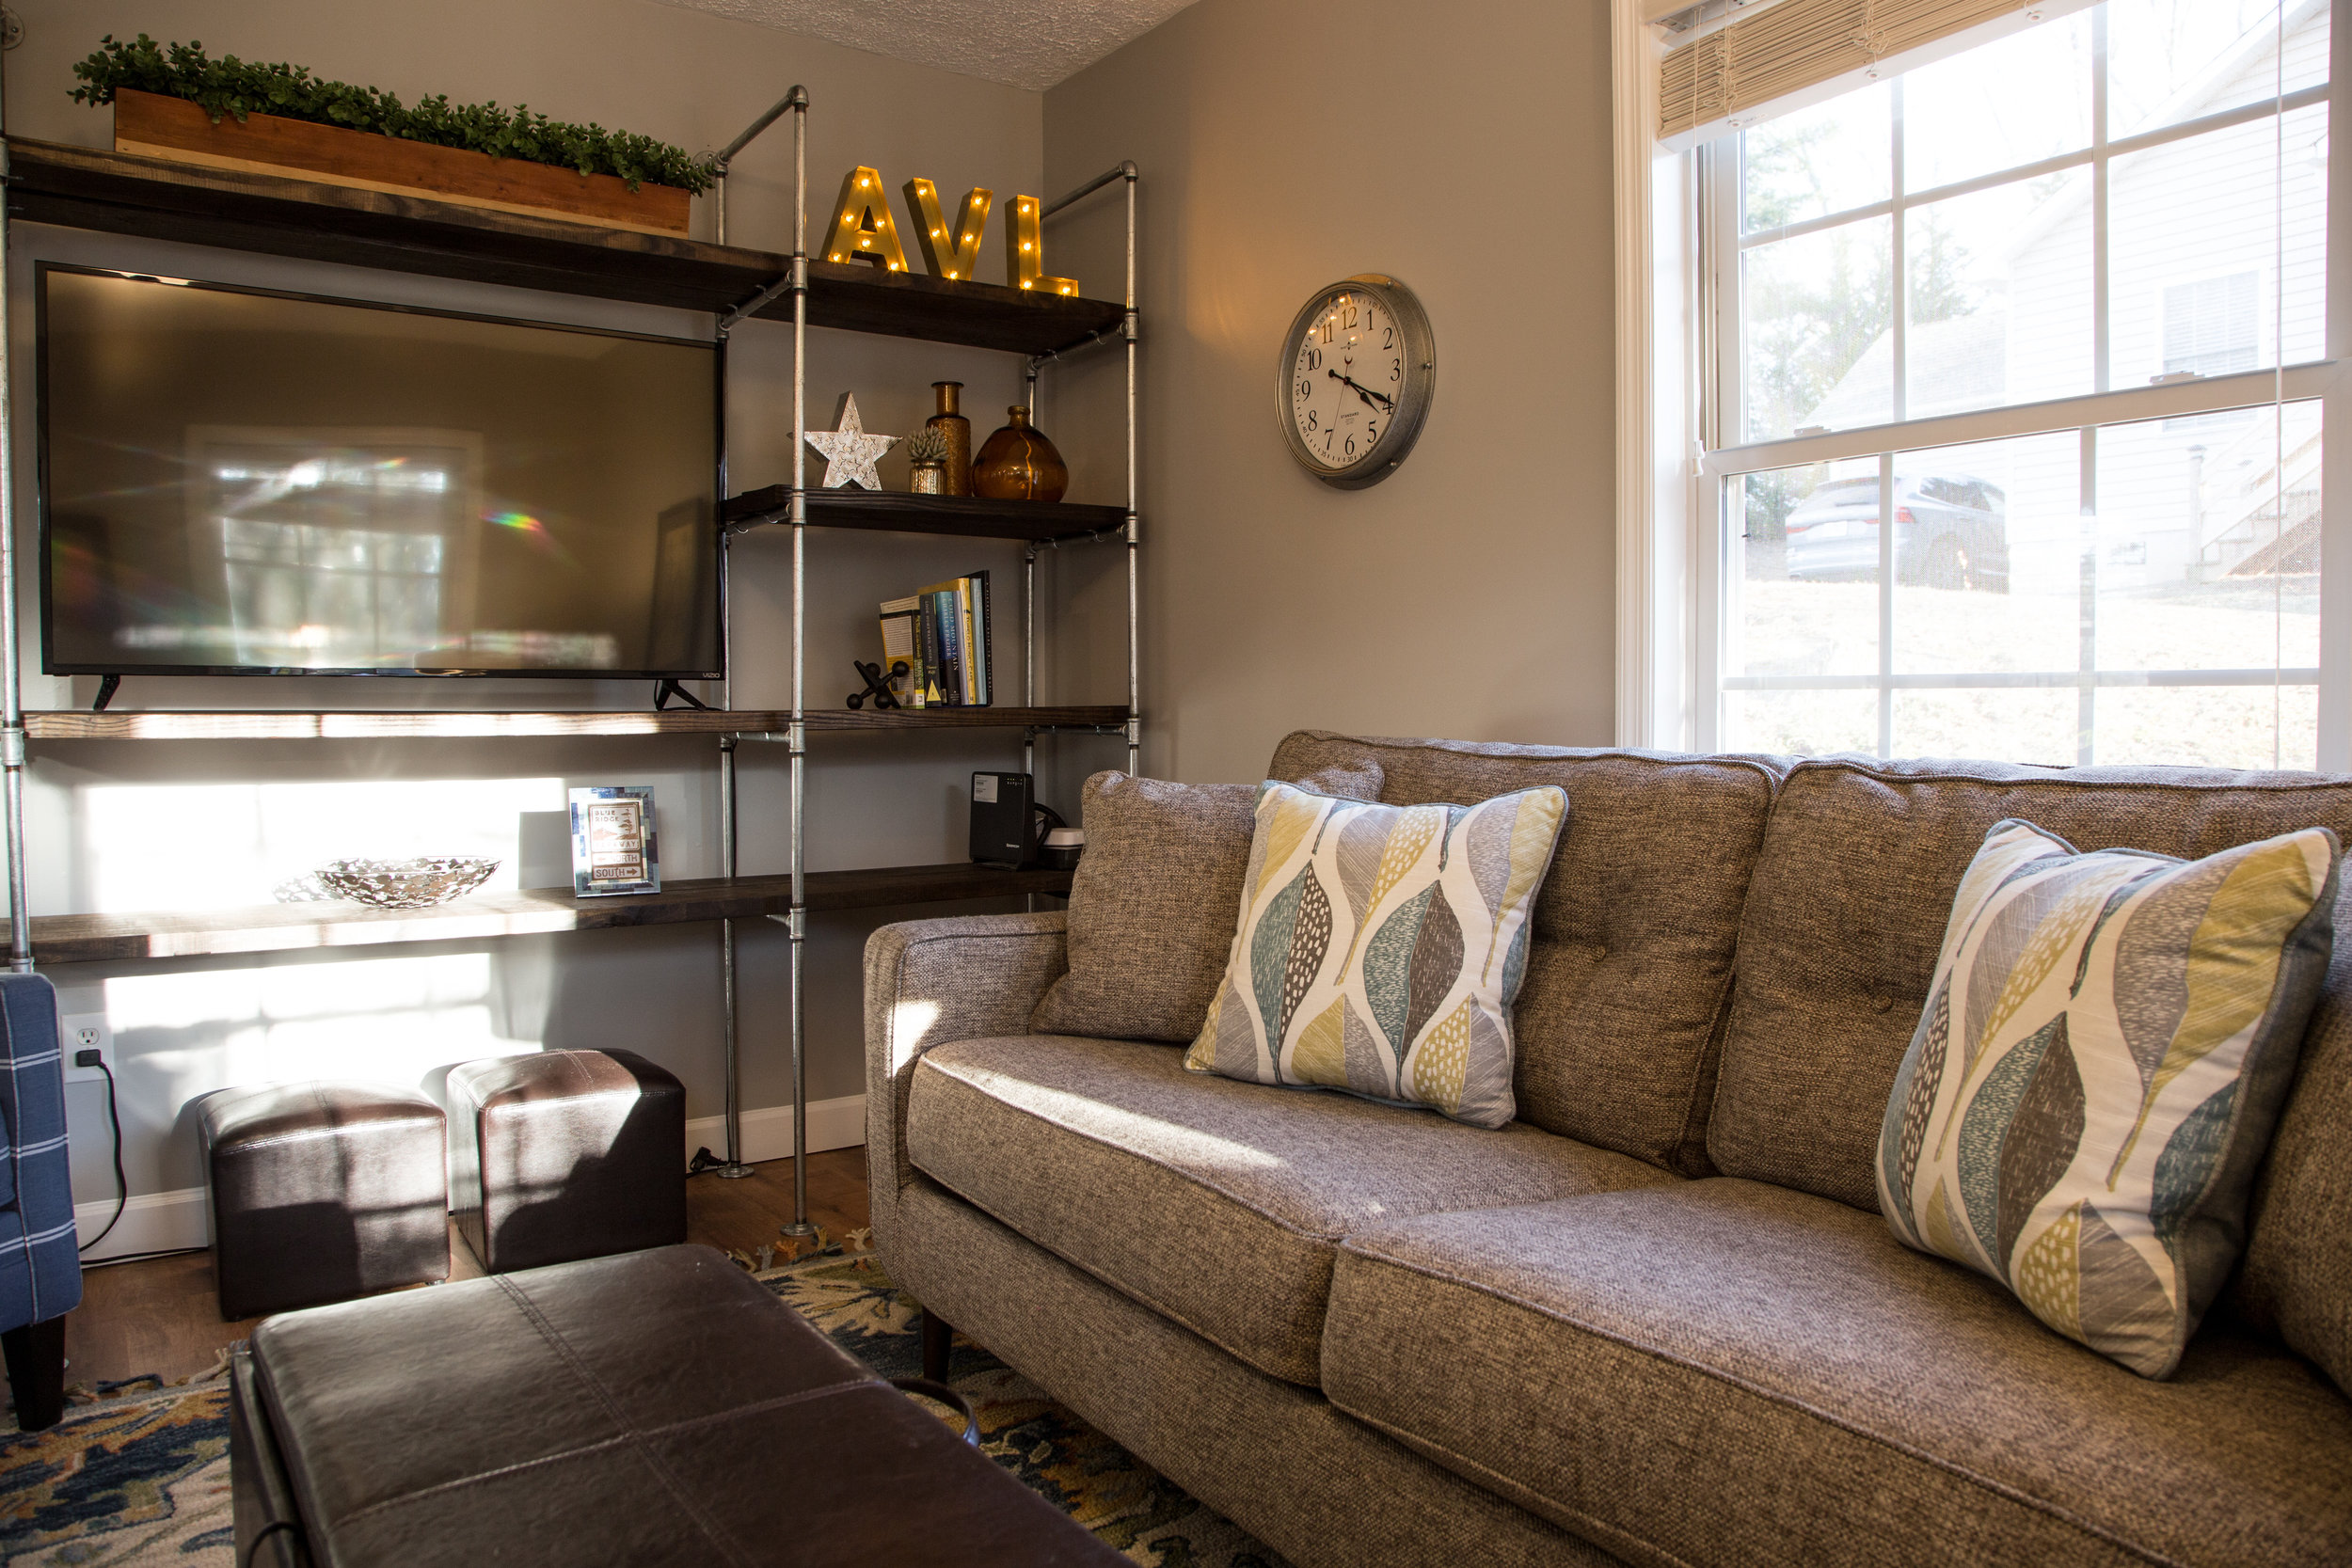 Local art, regional literature, and a flat screen TV with streaming services to create a place that feels like home.